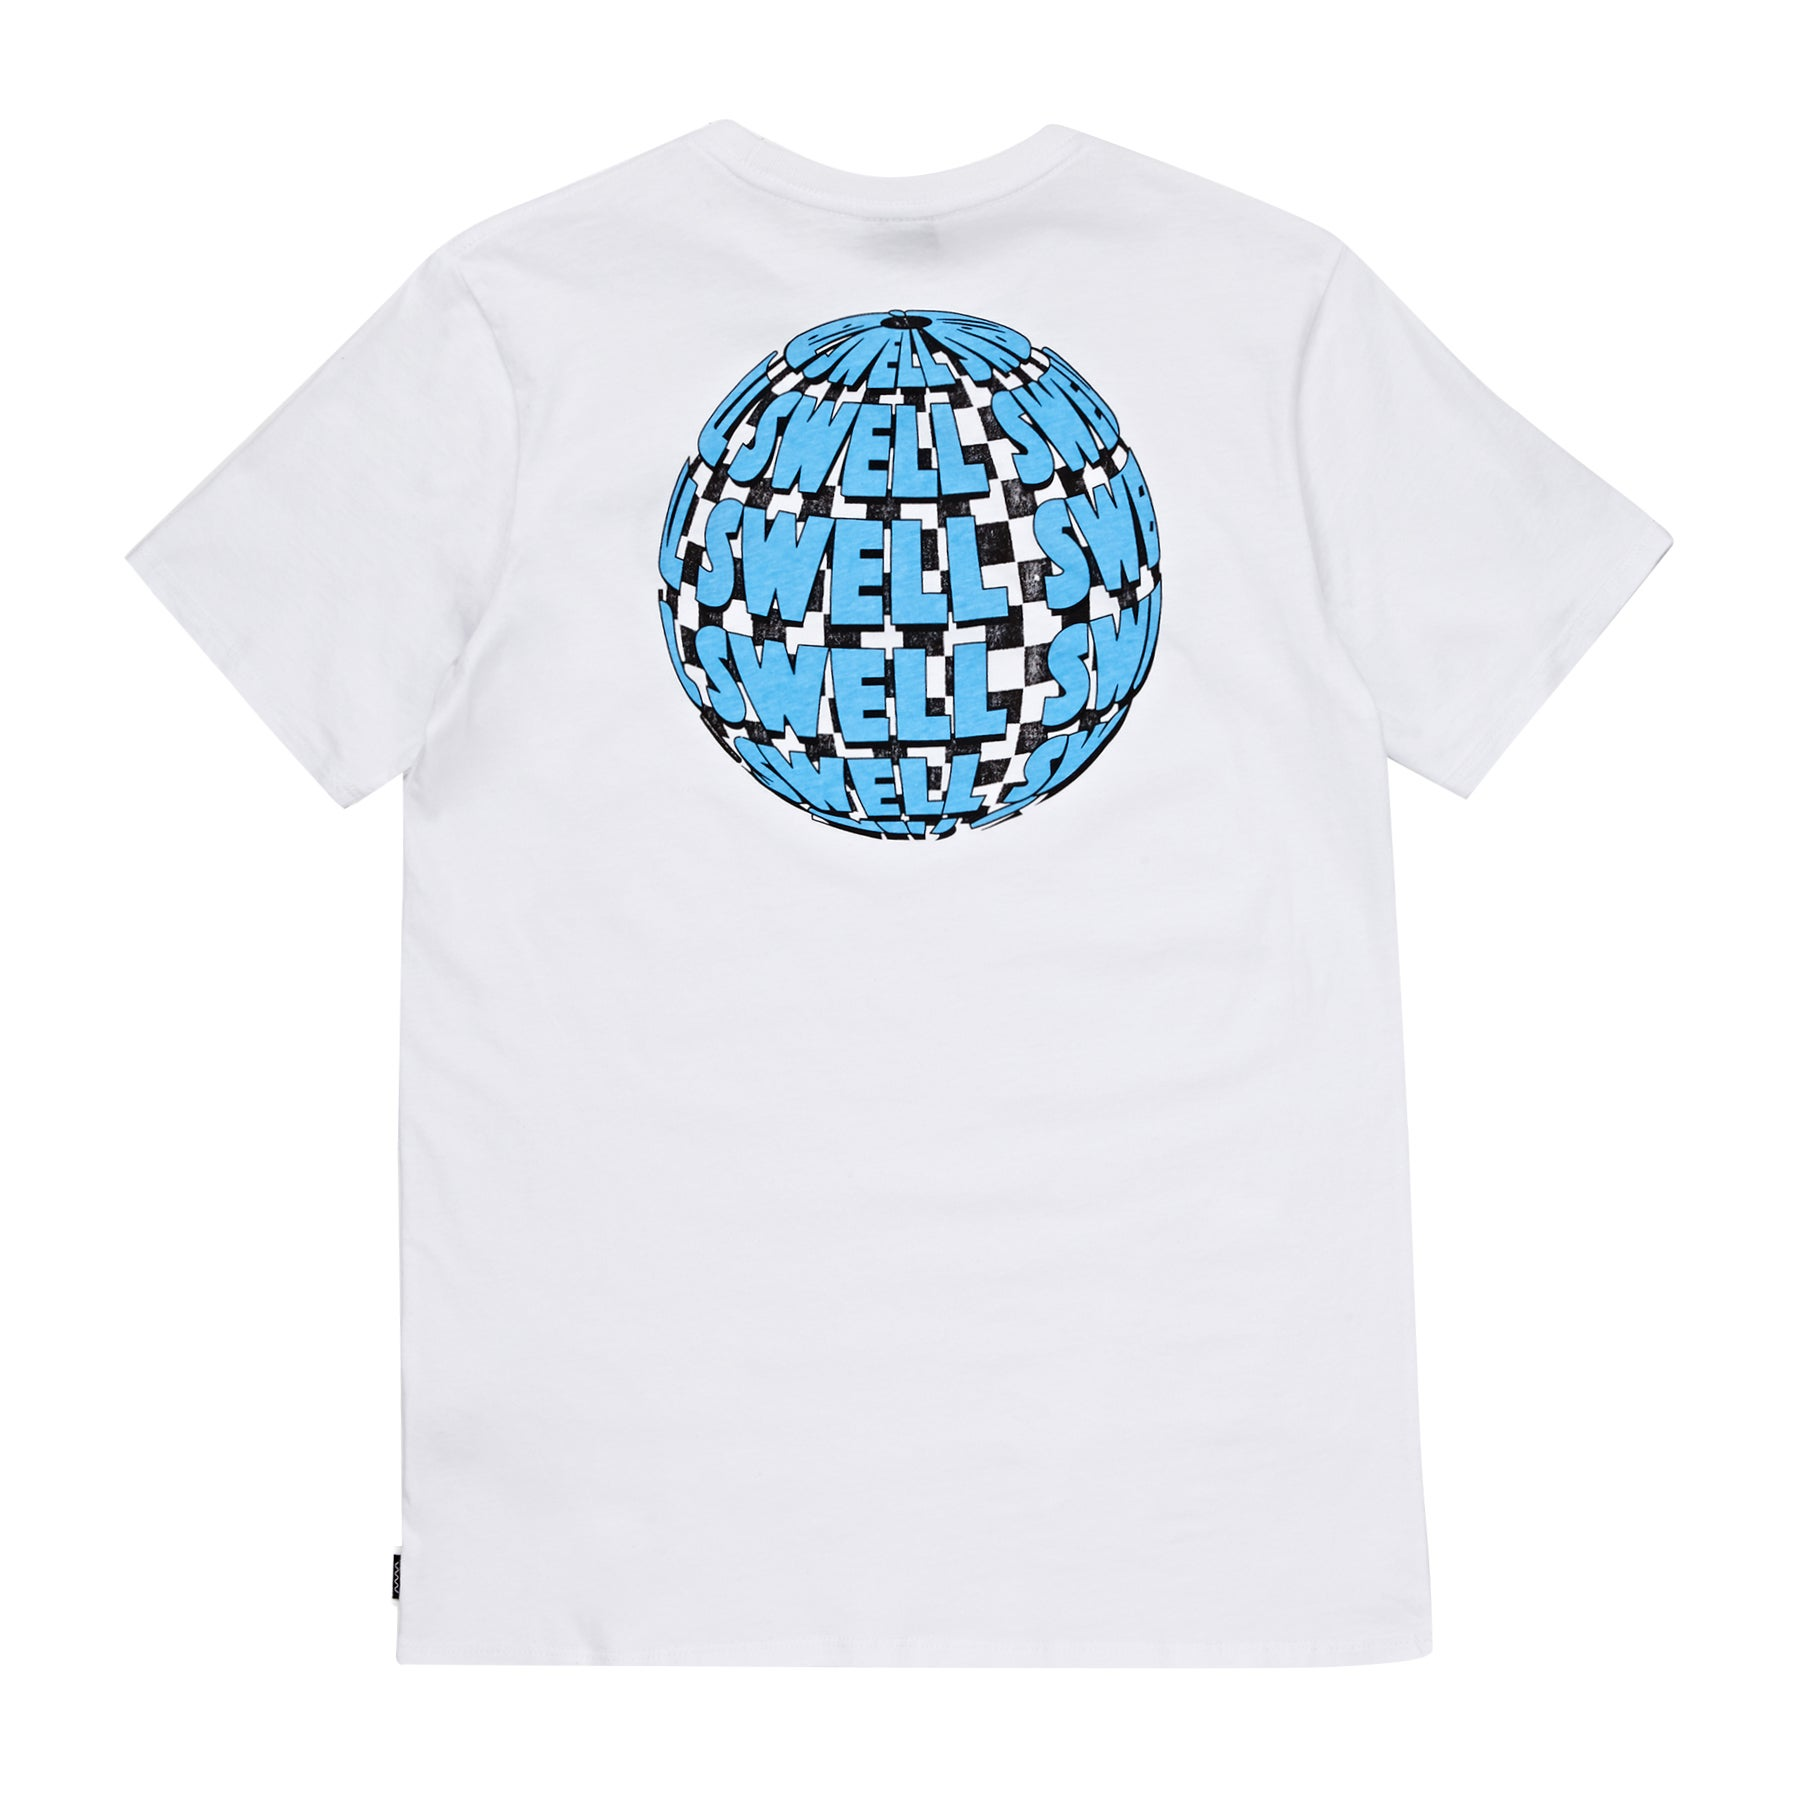 Camiseta de manga corta SWELL GLOBAL - OFF WHITE